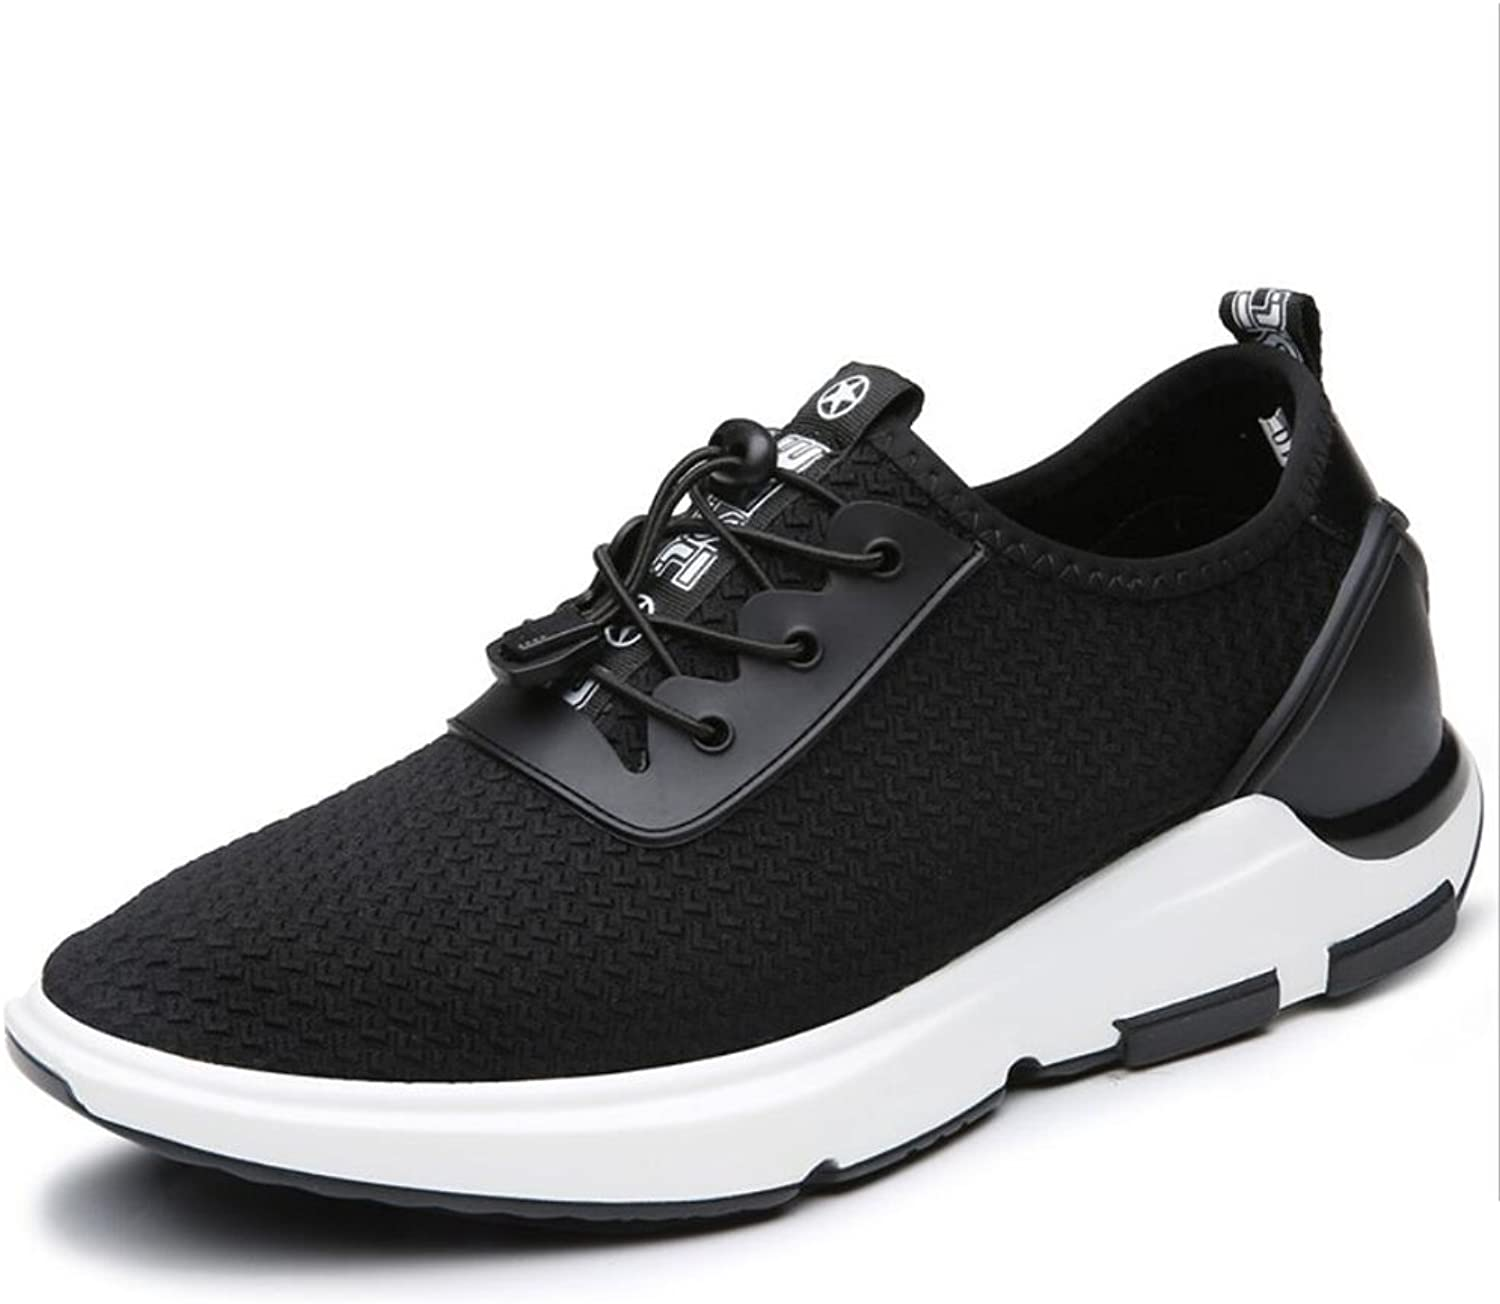 XUE Men's shoes Mesh Spring Fall High-Top Lace-up Sneakers Outdoor Hiking shoes Lightweight Breathable Comfort Light Soles Athletic shoes Light Soles Running shoes Fitness shoes Personality